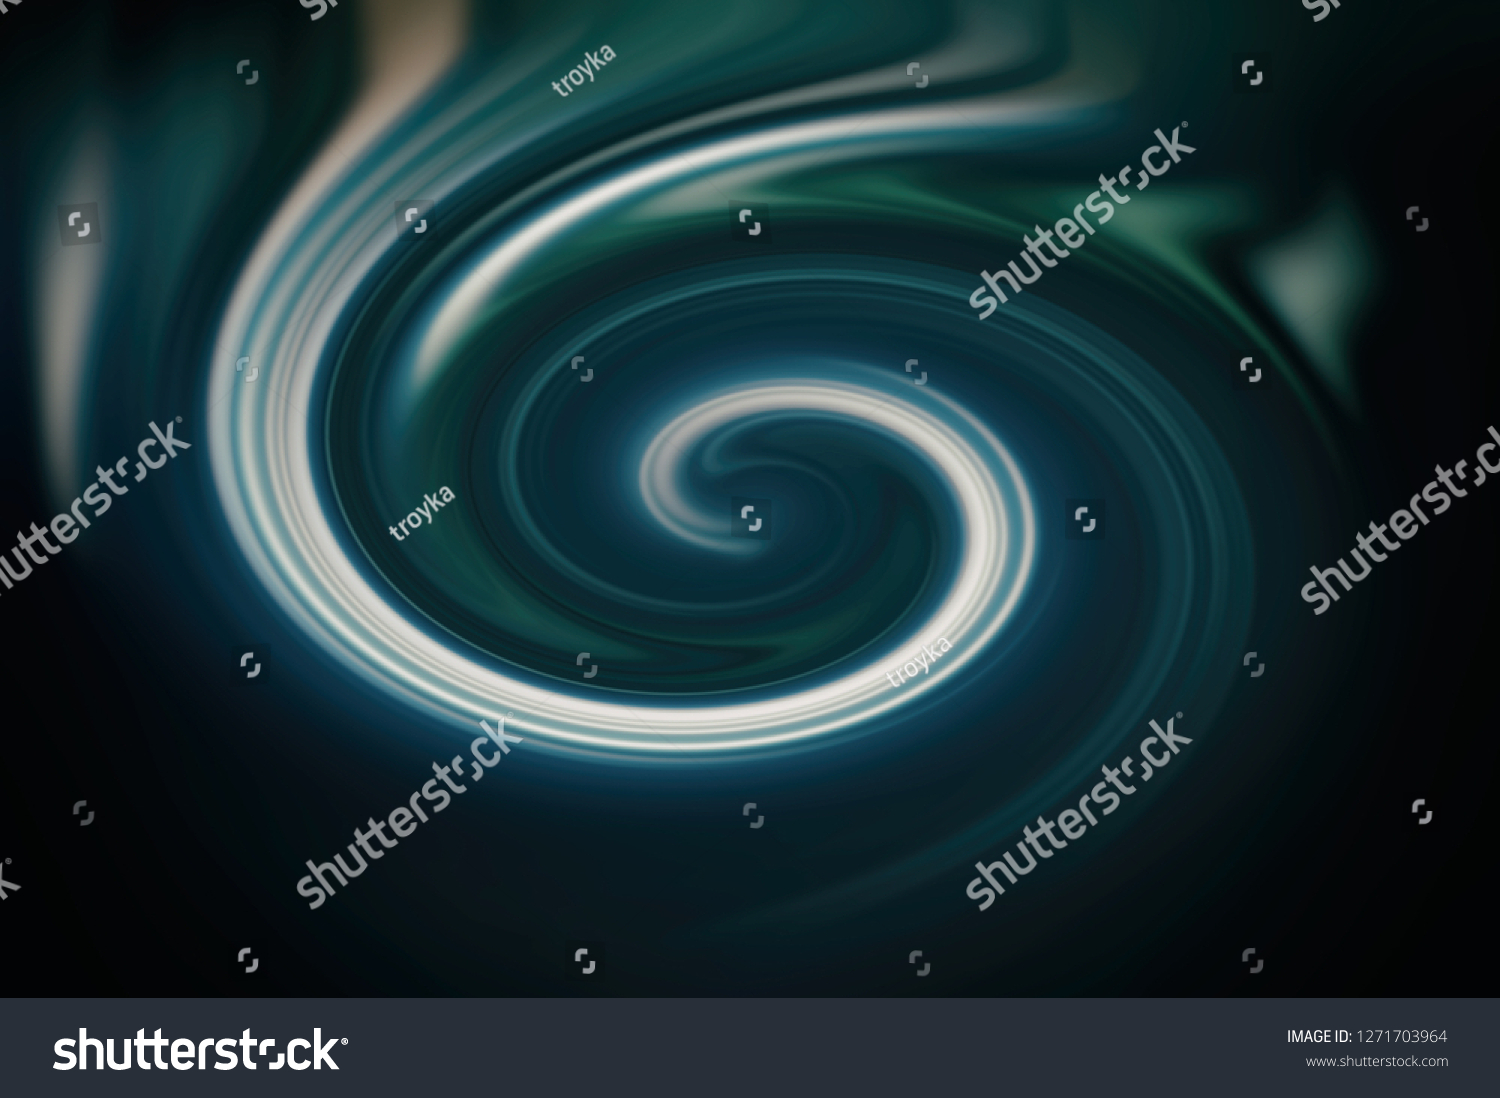 Aqua Whirlpools Spiral Movement Water Whirlpool Aqua Blue Stock Illustration